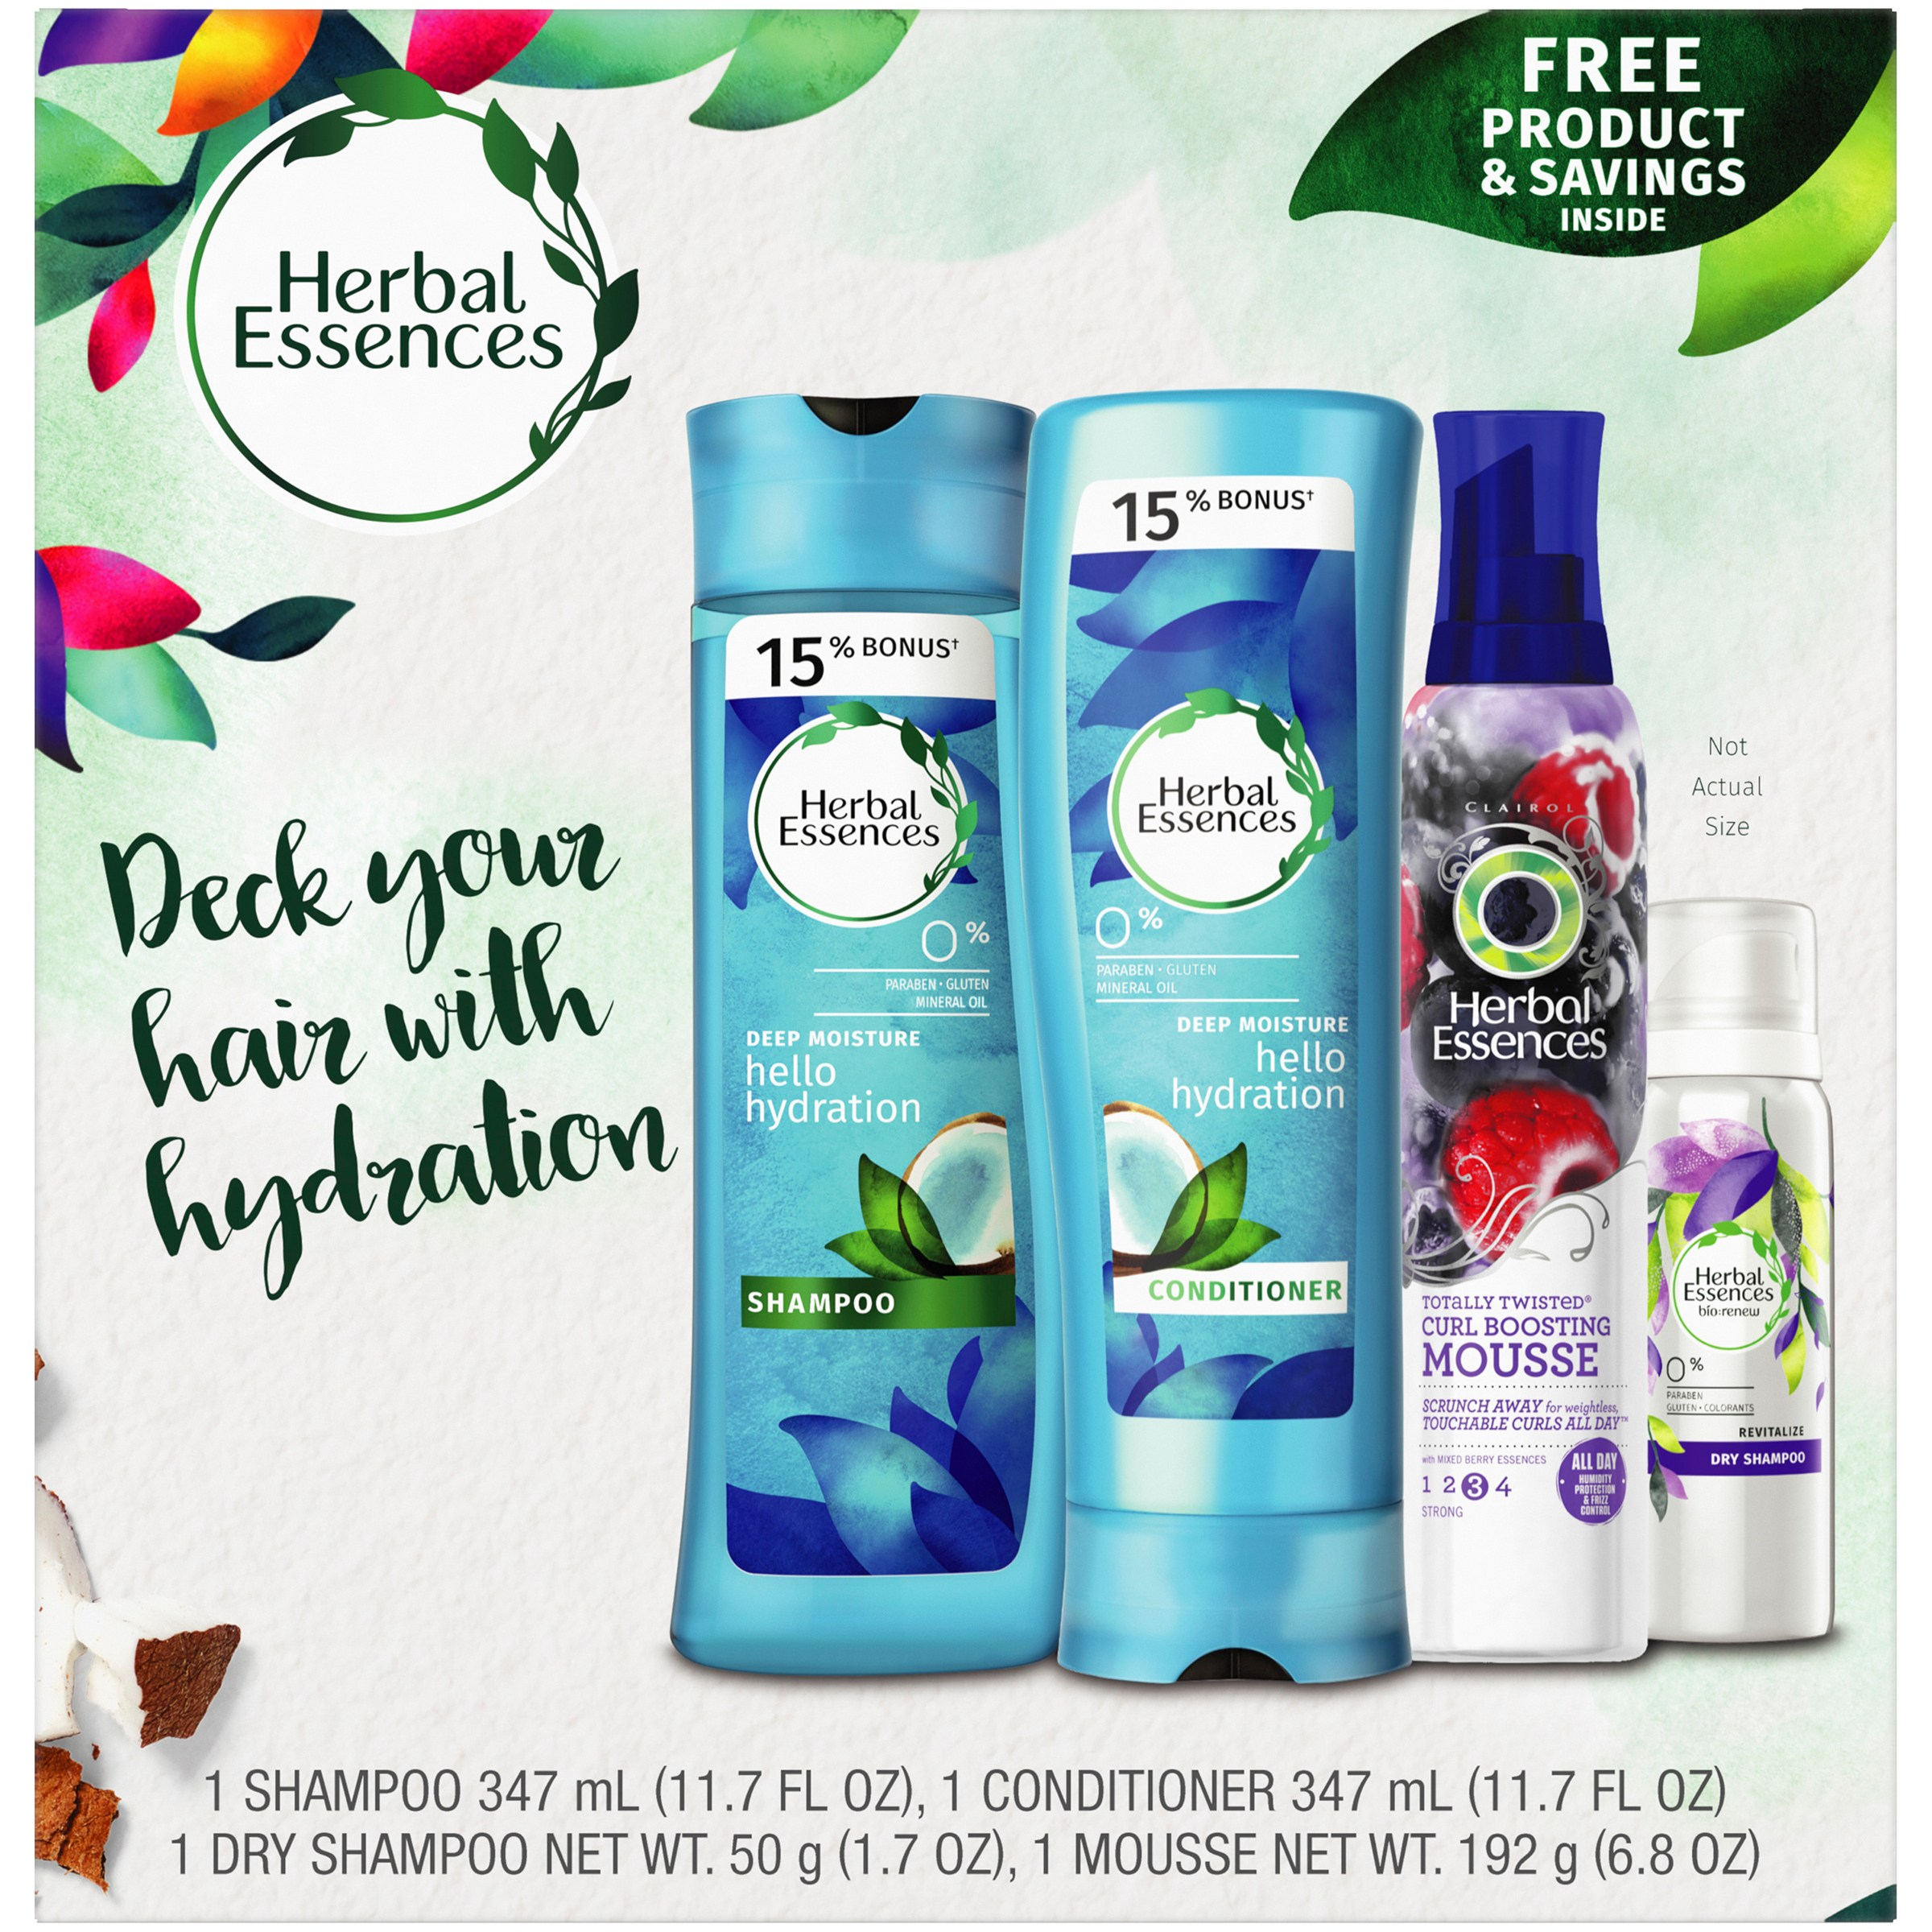 Herbal Essences Hello Hydration Moisturizing Shampoo and Conditioner Holiday Pack